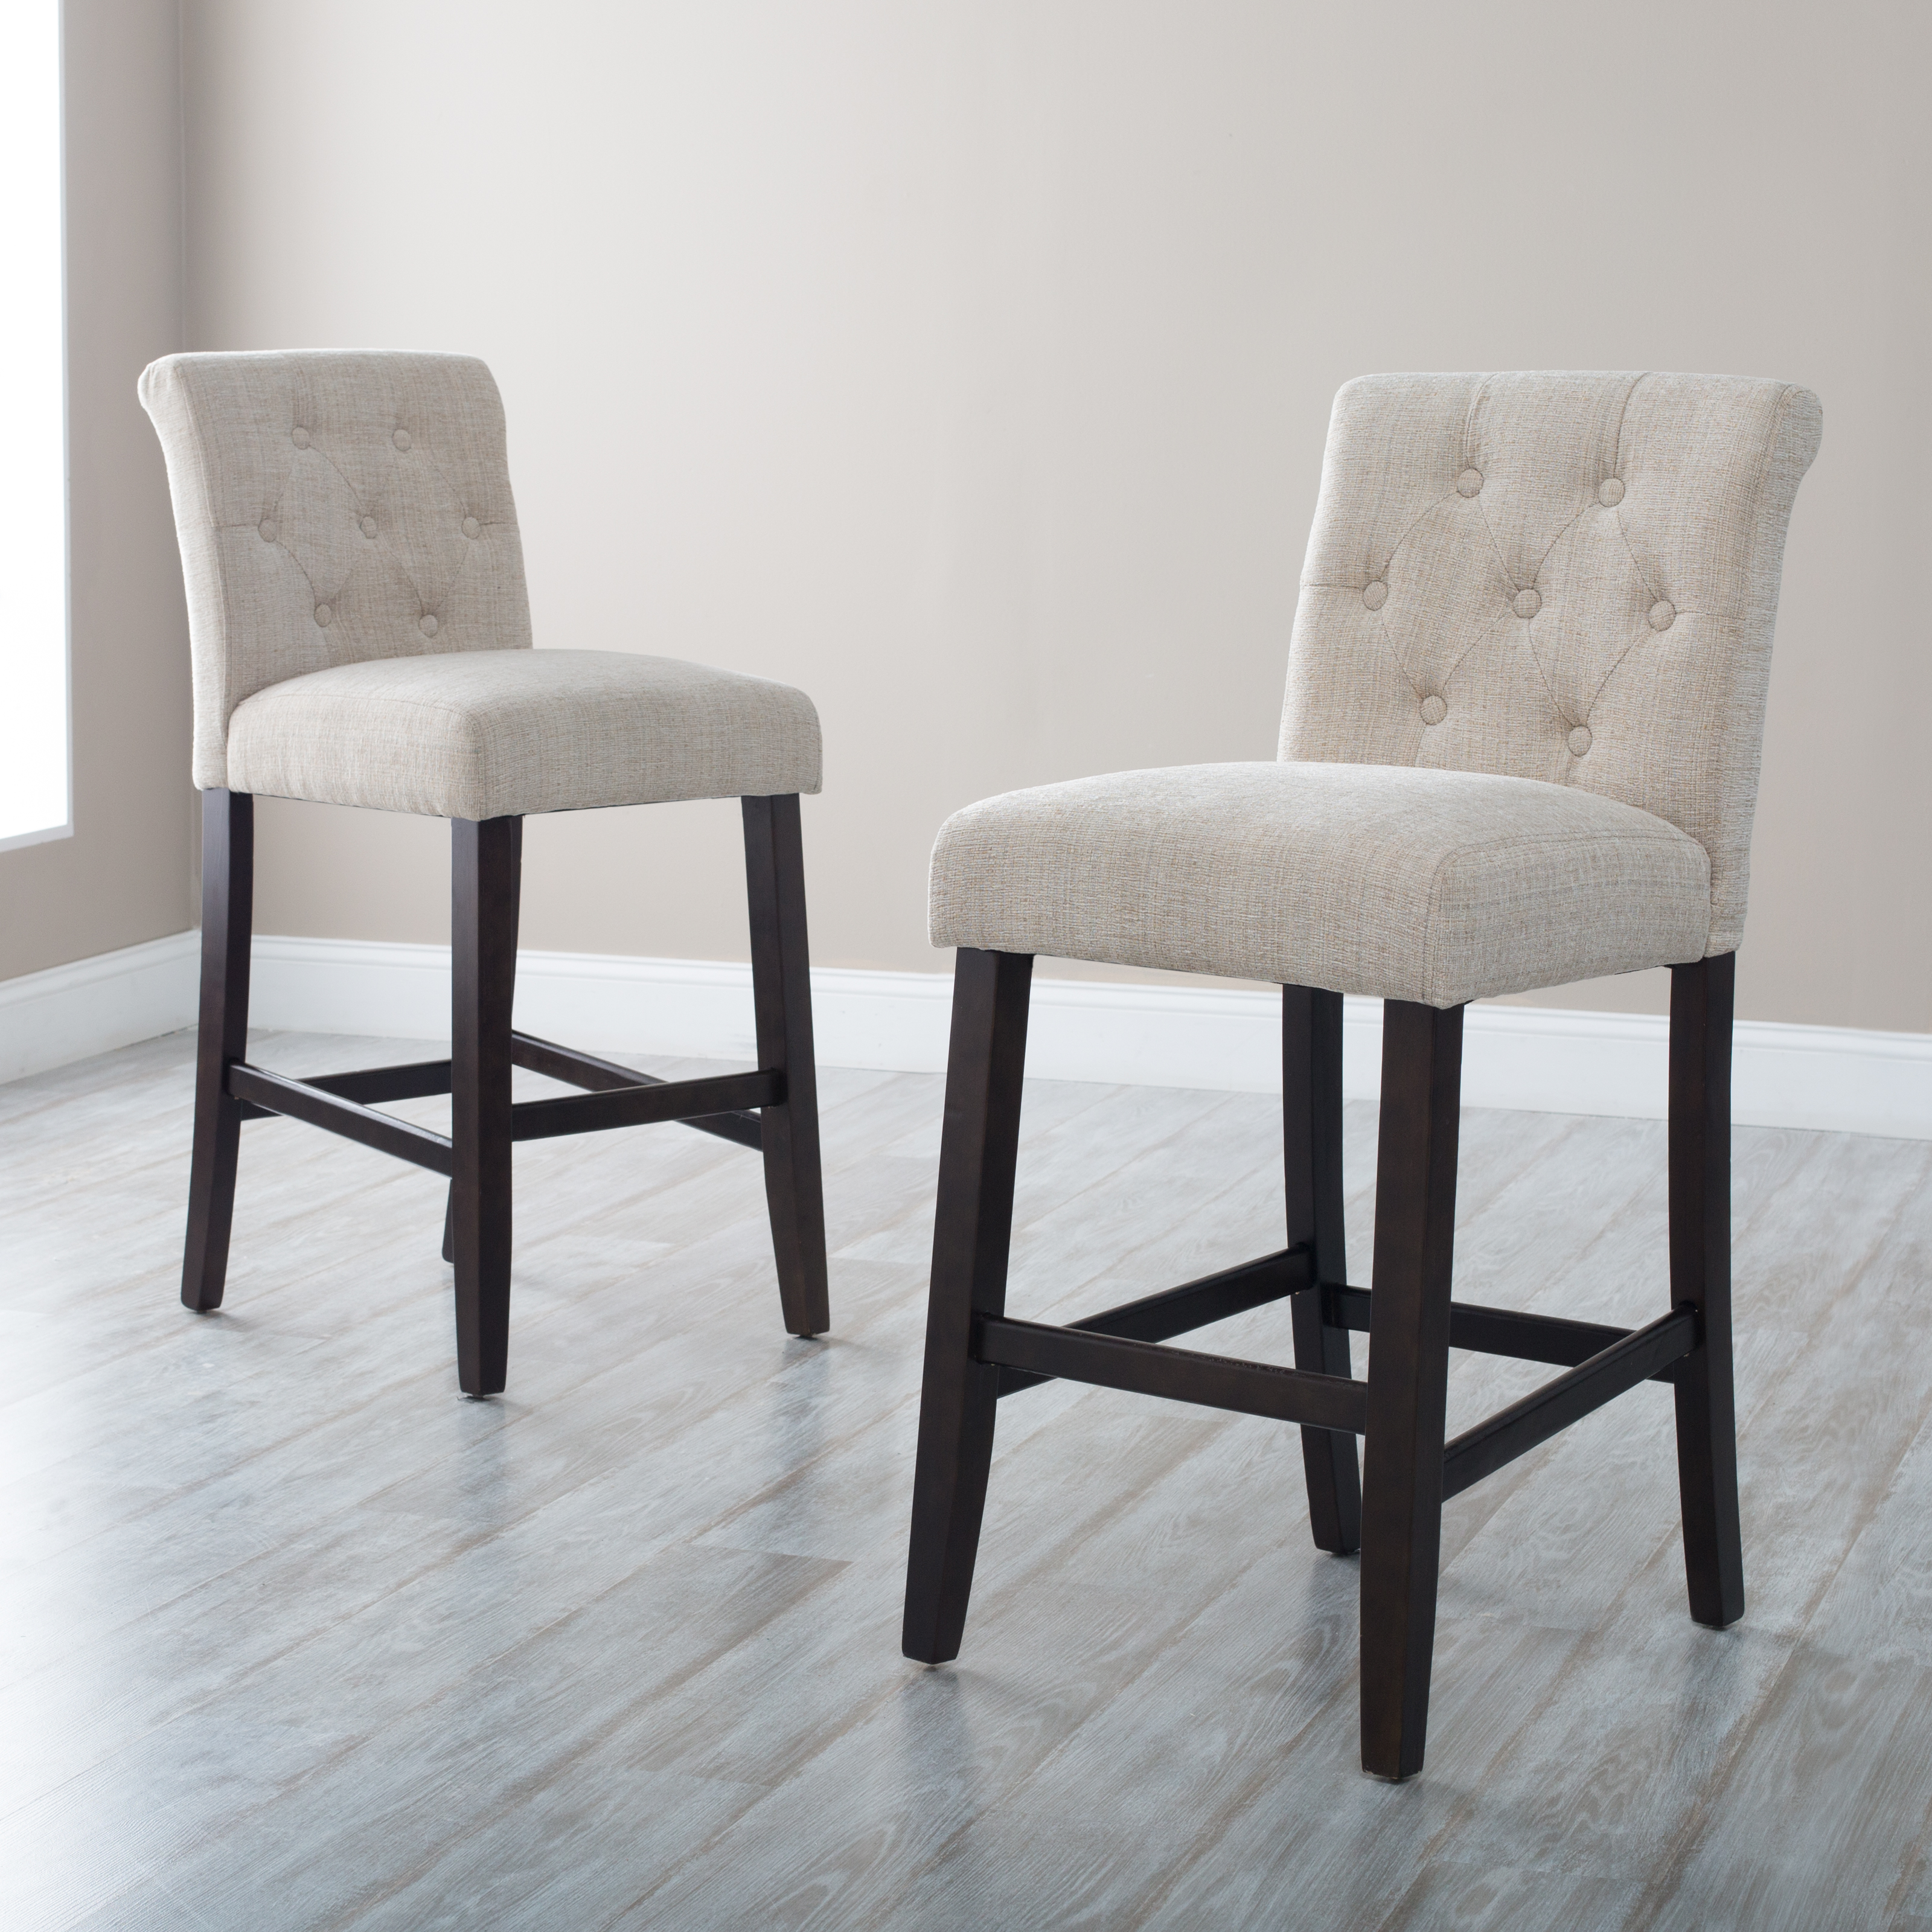 scale swivel boraam product augustaswivelbarstool in hayneedle kitchen bar augusta stool cfm